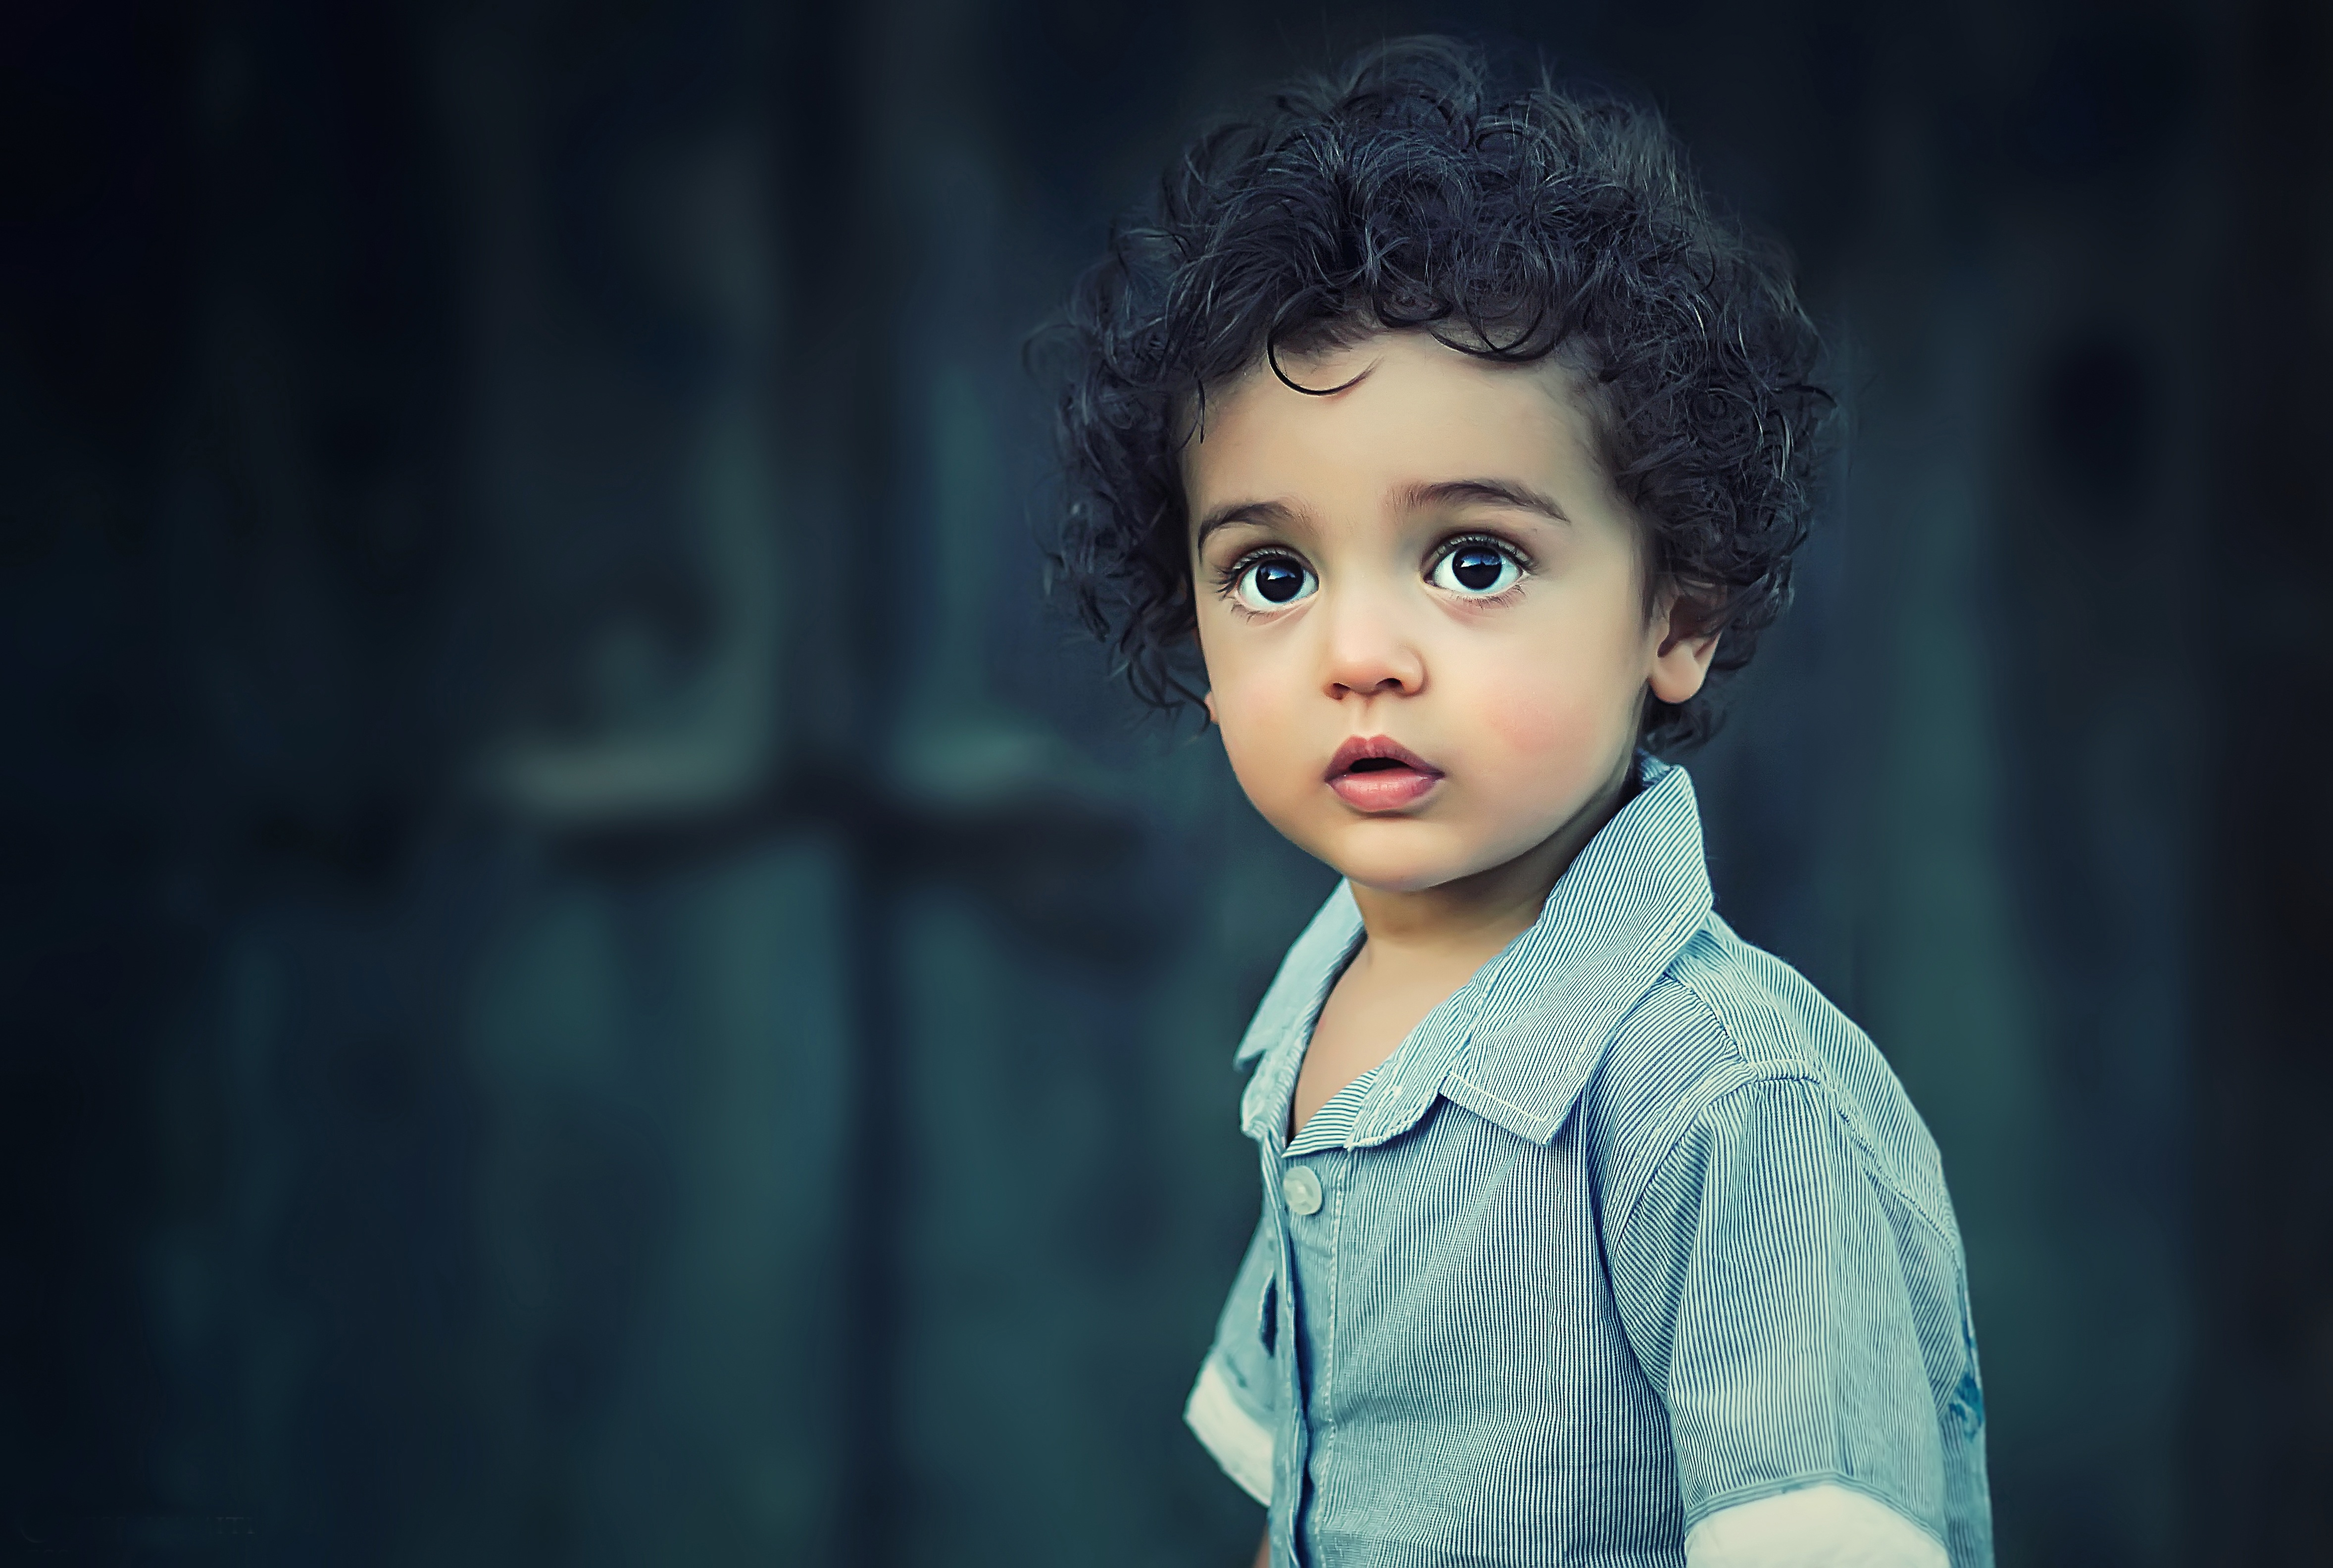 Cool Cute Wallpaper For Iphone Free Stock Photo Of Adorable Blur Boy